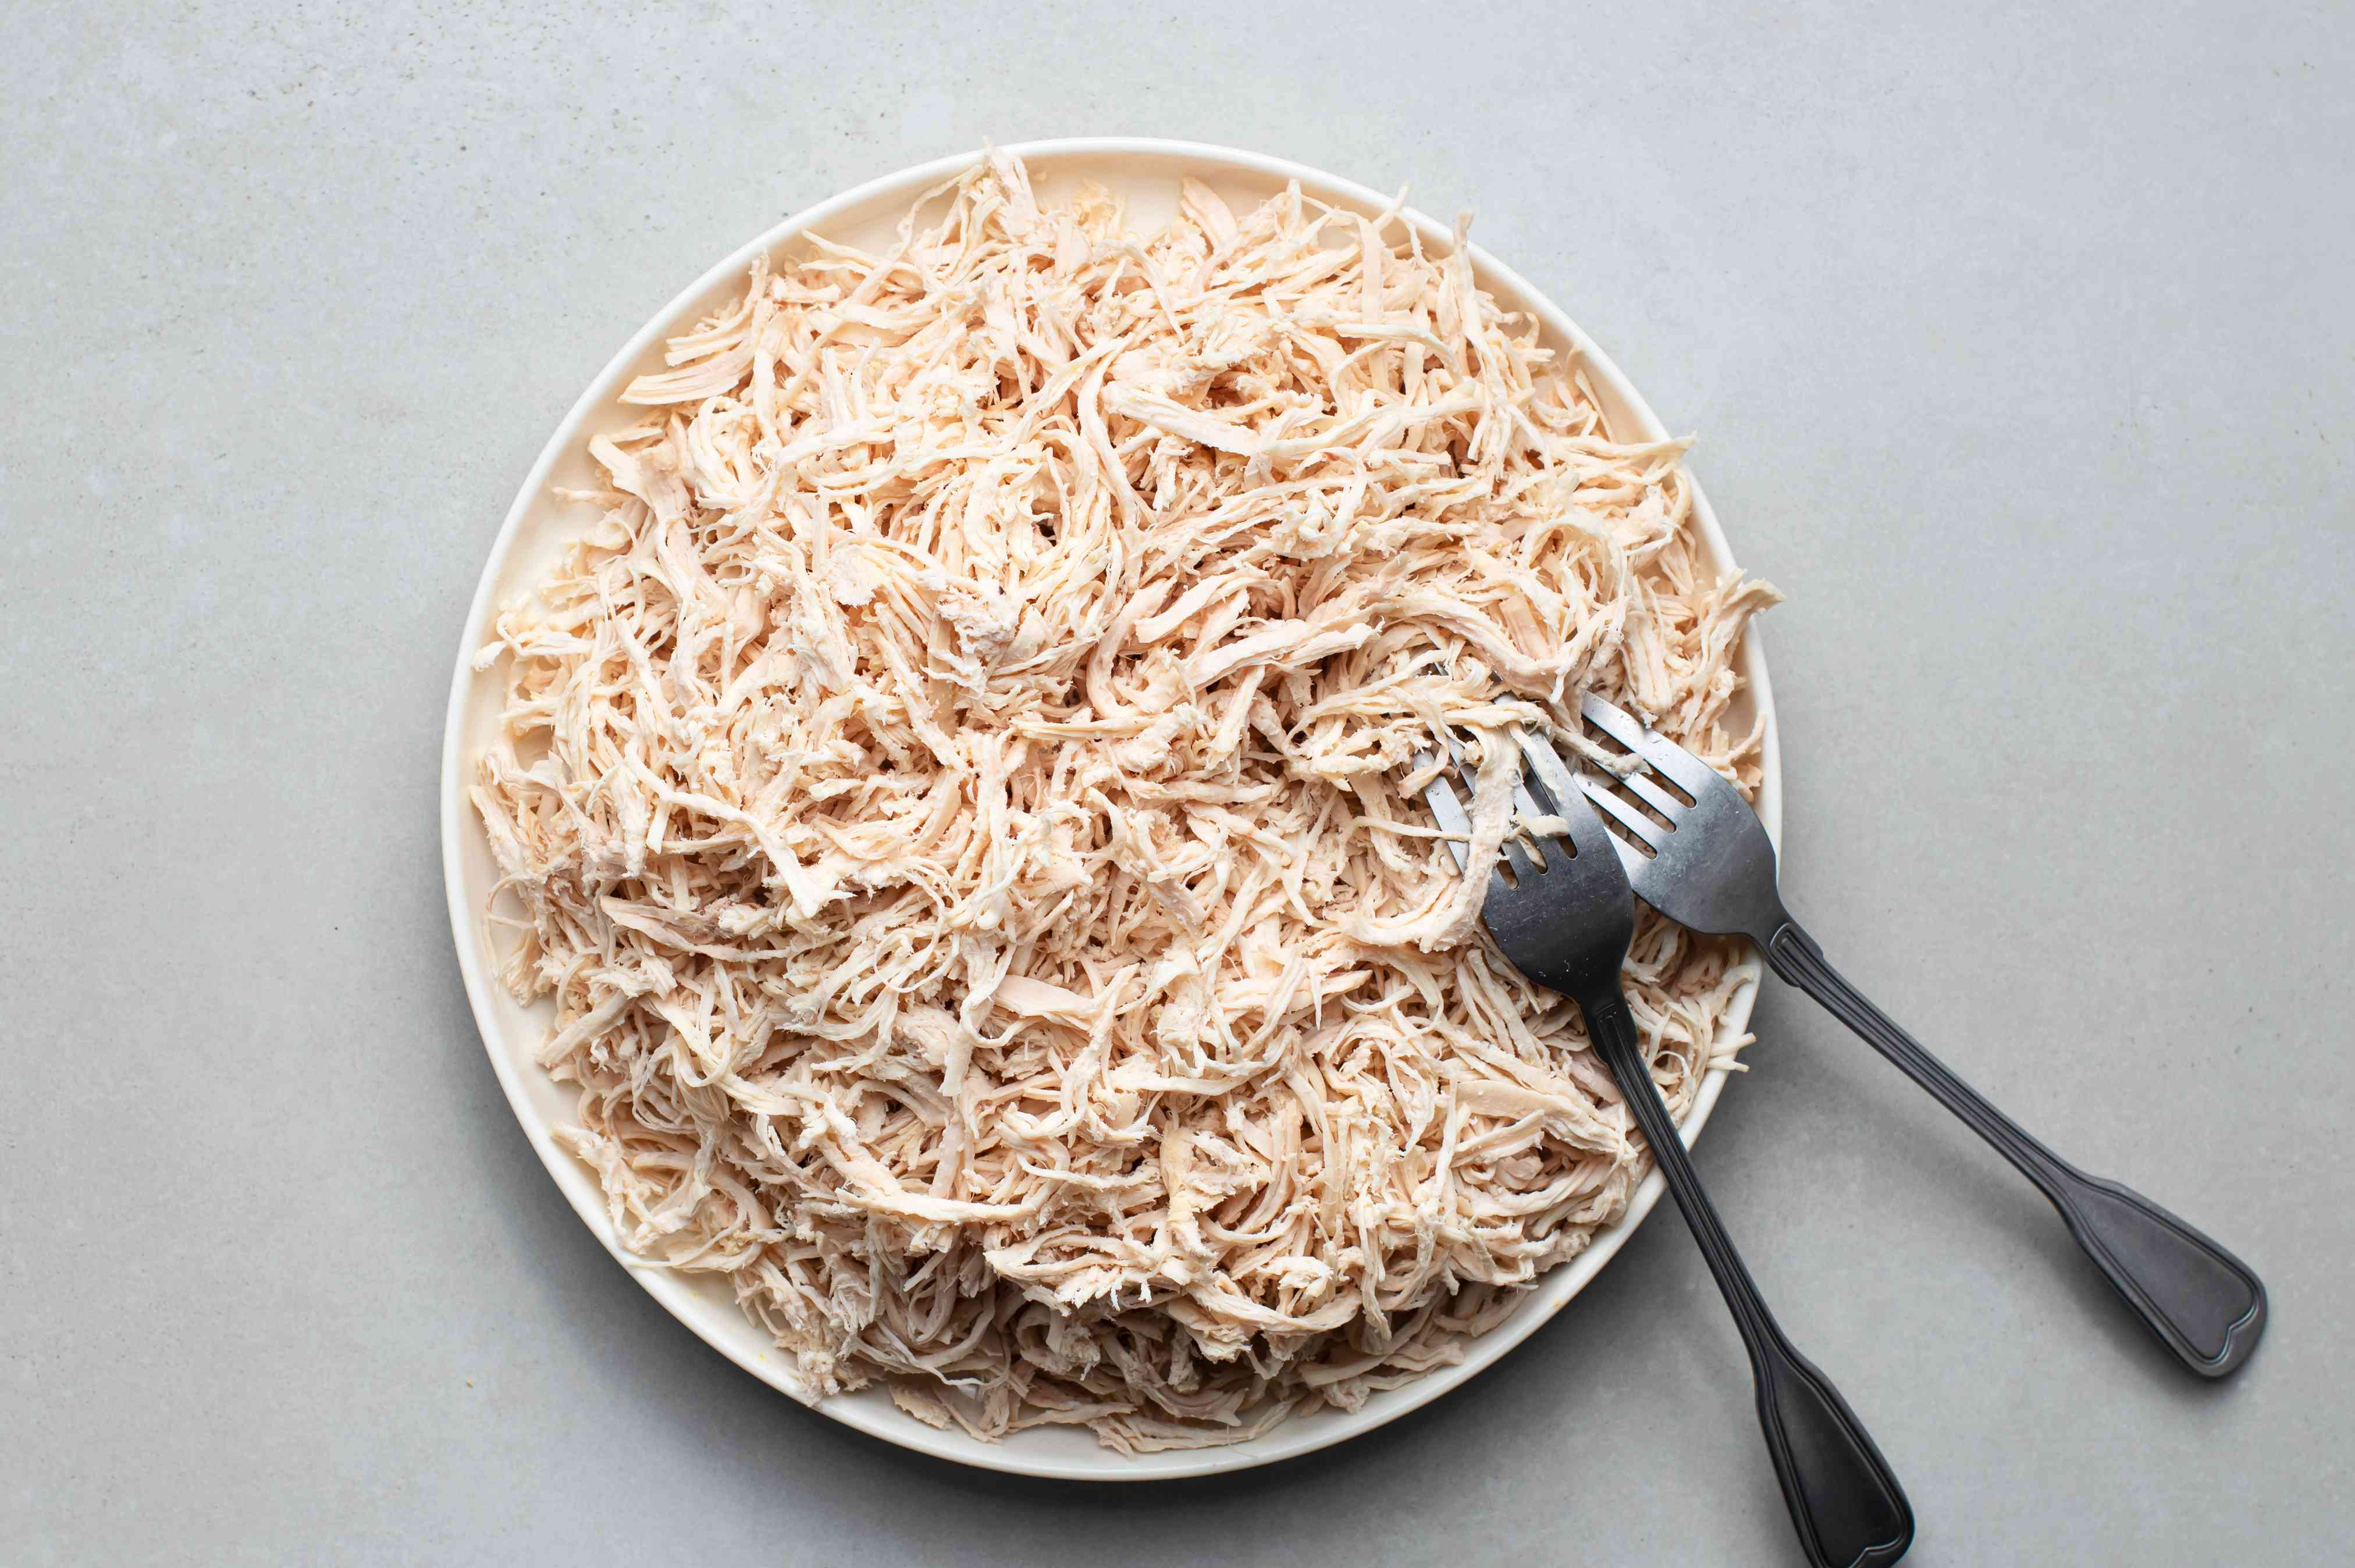 Chicken shredded with forks on a plate